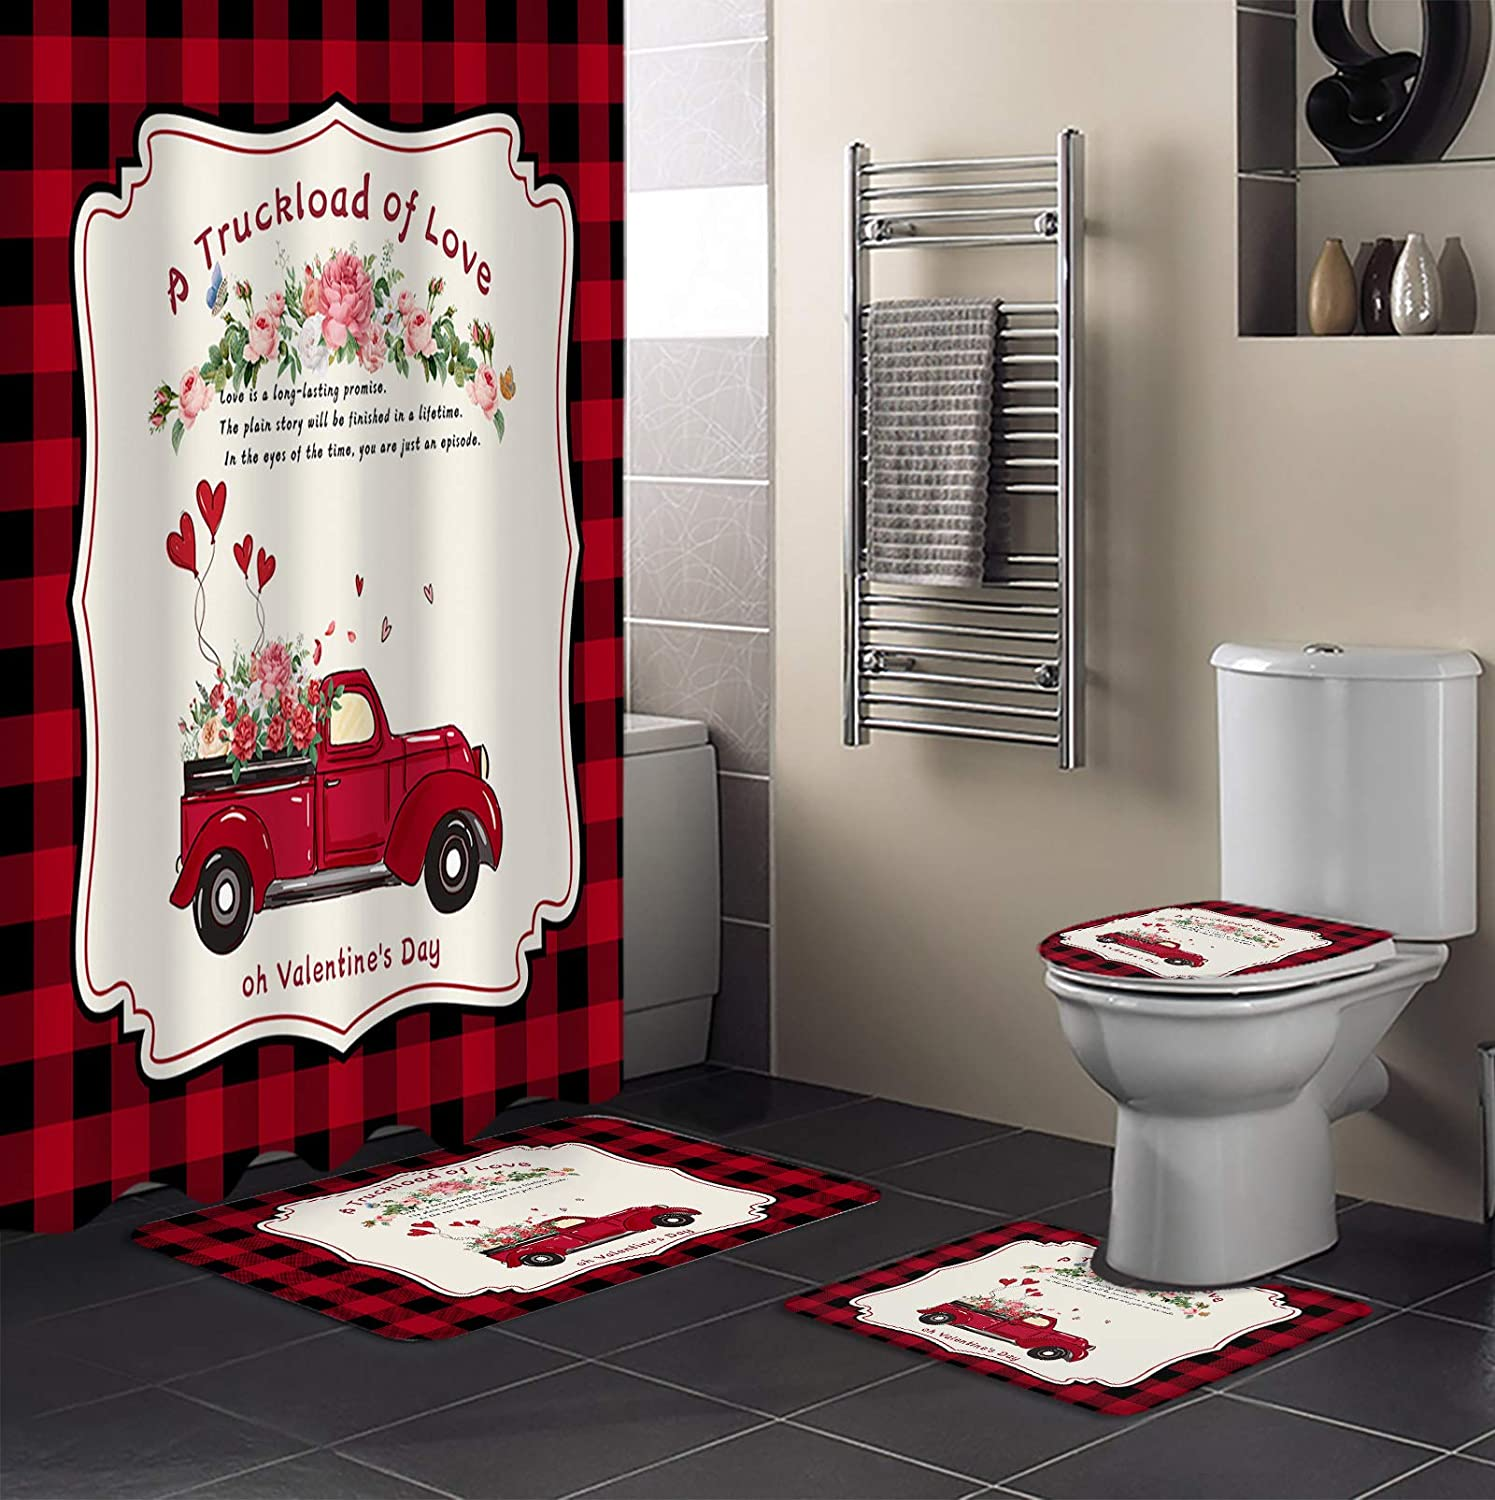 4 Piece Shower Curtain Sets Happy Valentine's Day Of Truckload A Same day Spasm price shipping